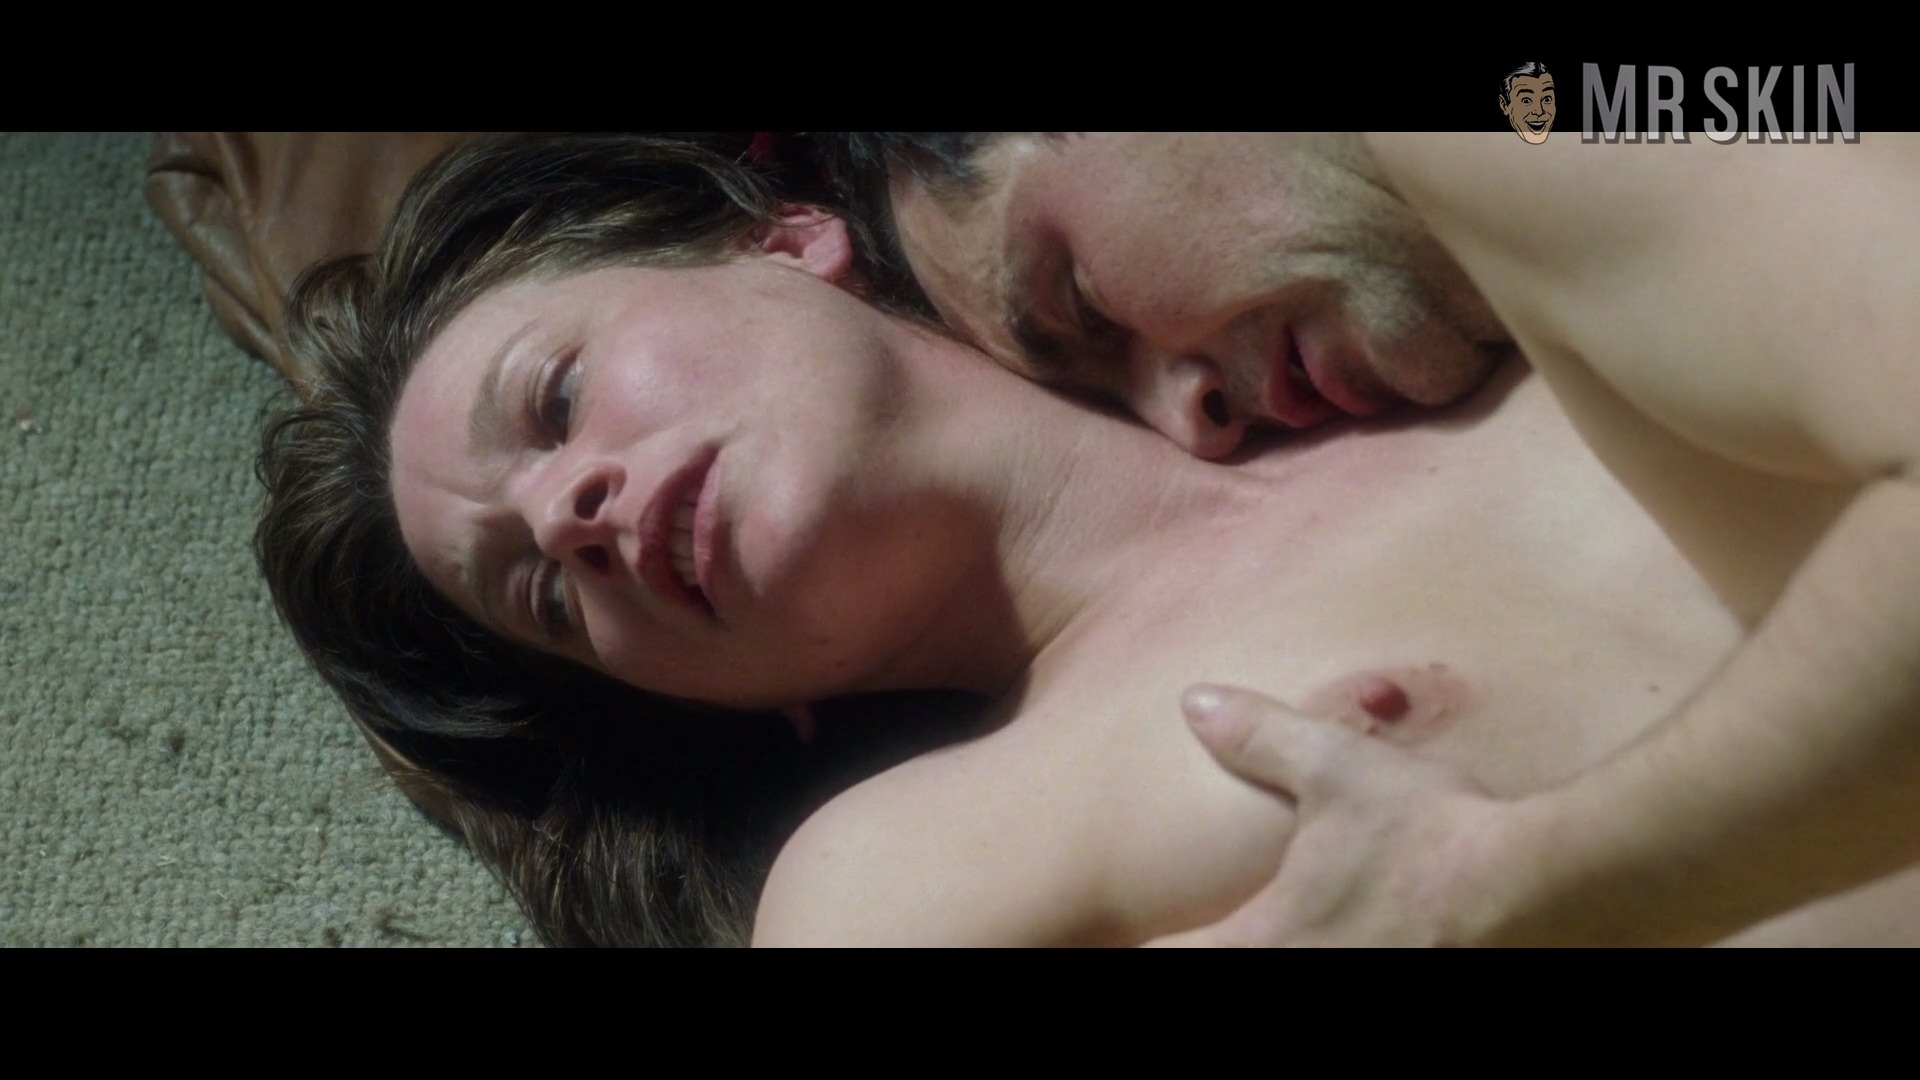 Intimacy Nude Scenes - Naked Pics and Videos at Mr. Skin